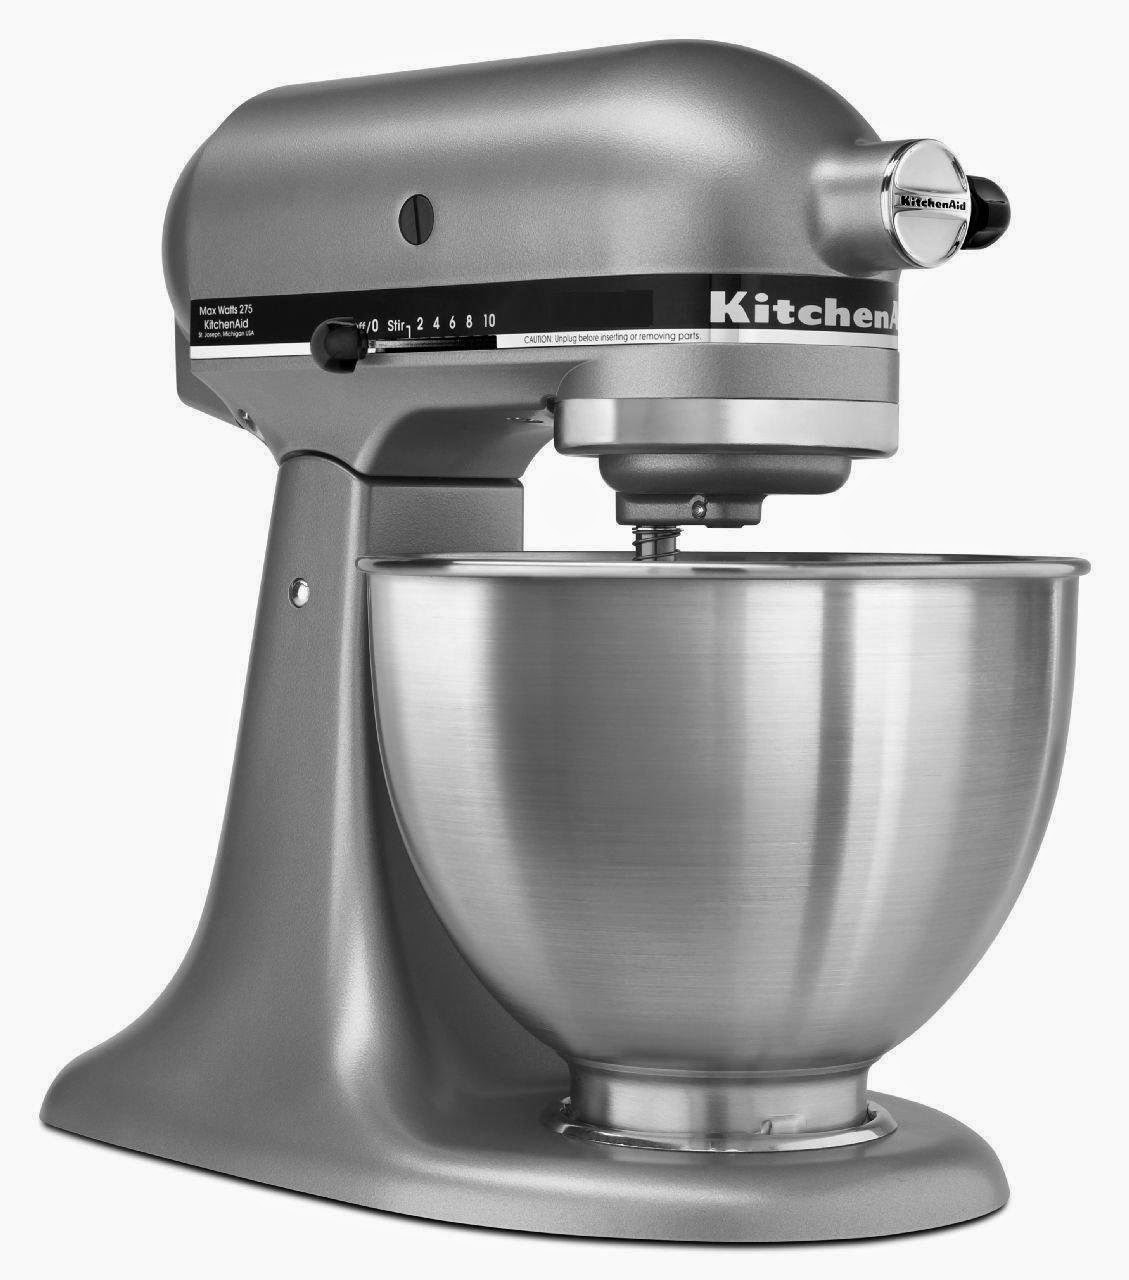 Kitchen Aid Mixer Reviews Roller Island Home Garden And More Kitchenaid K45sswh K45ss Classic 4